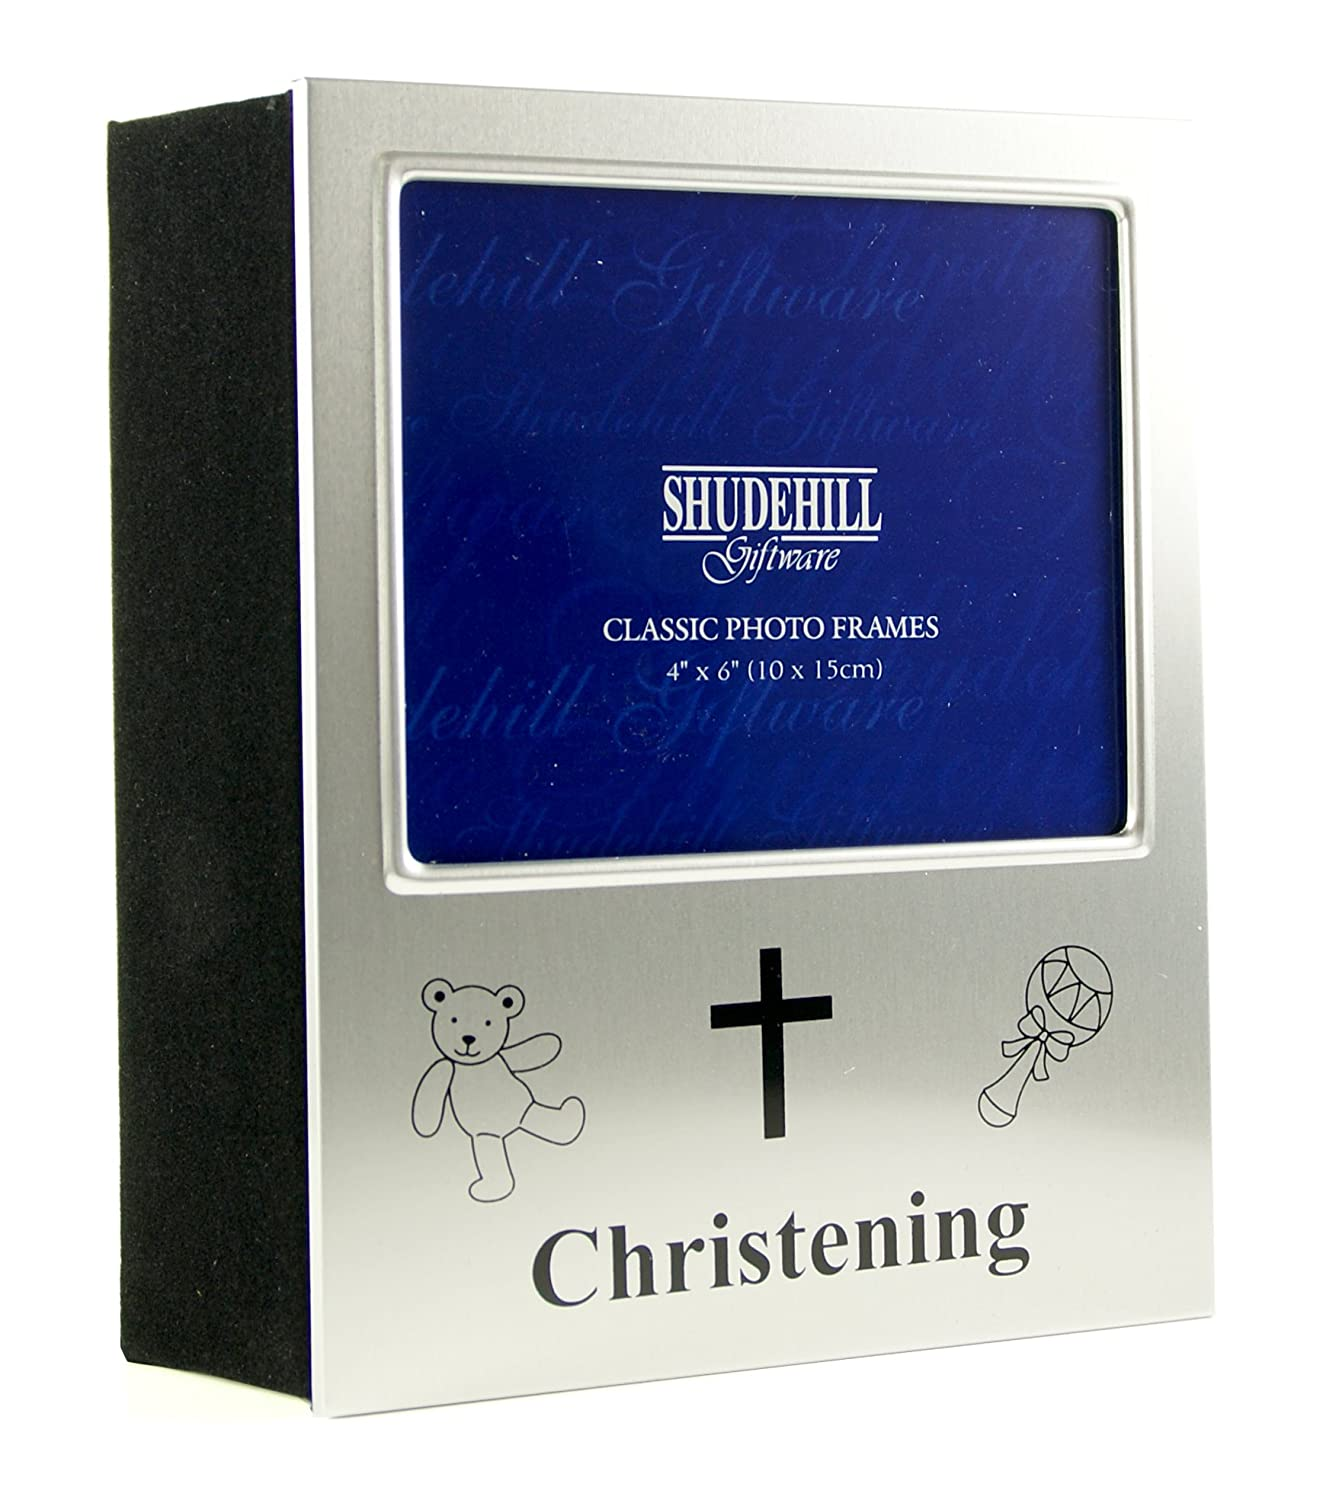 Deluxe Christening Photo Album Gift - Space for Photo on Front HOLDS 72 Photos 40112 Shudehill 56577873479